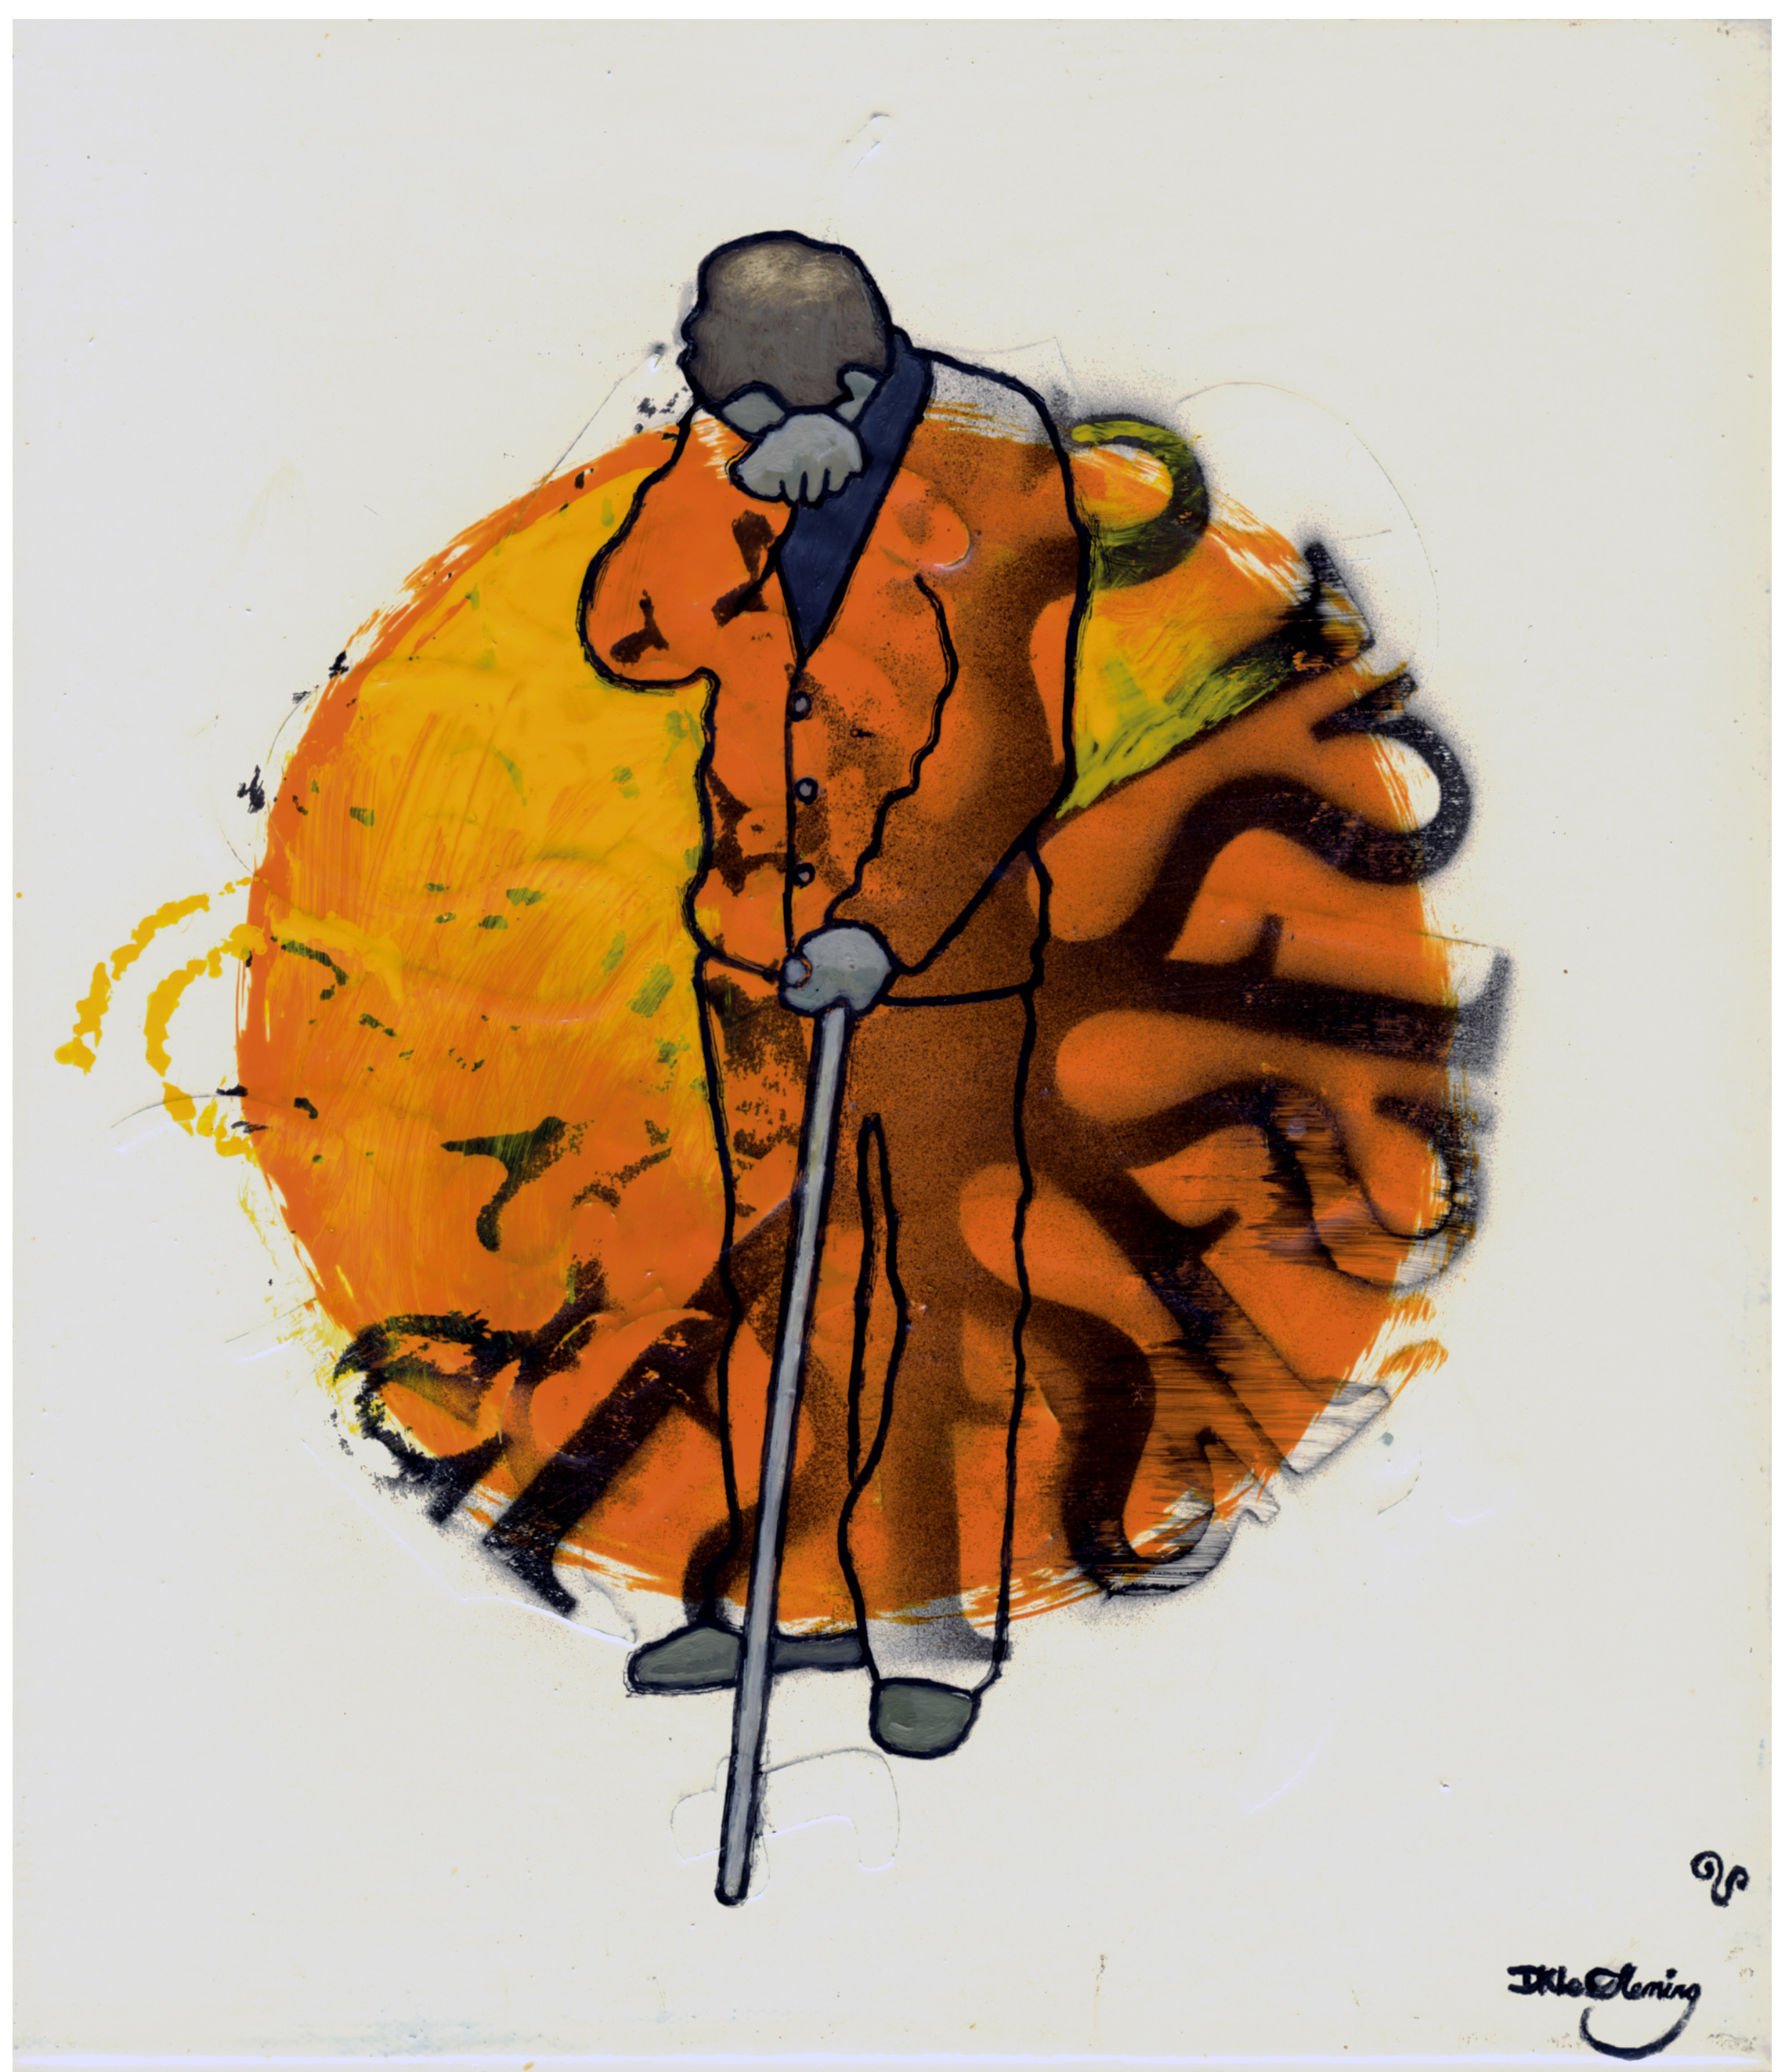 Painting by New Zealand painter David Le Fleming, of a man with walking stick, holding his hand up to his face